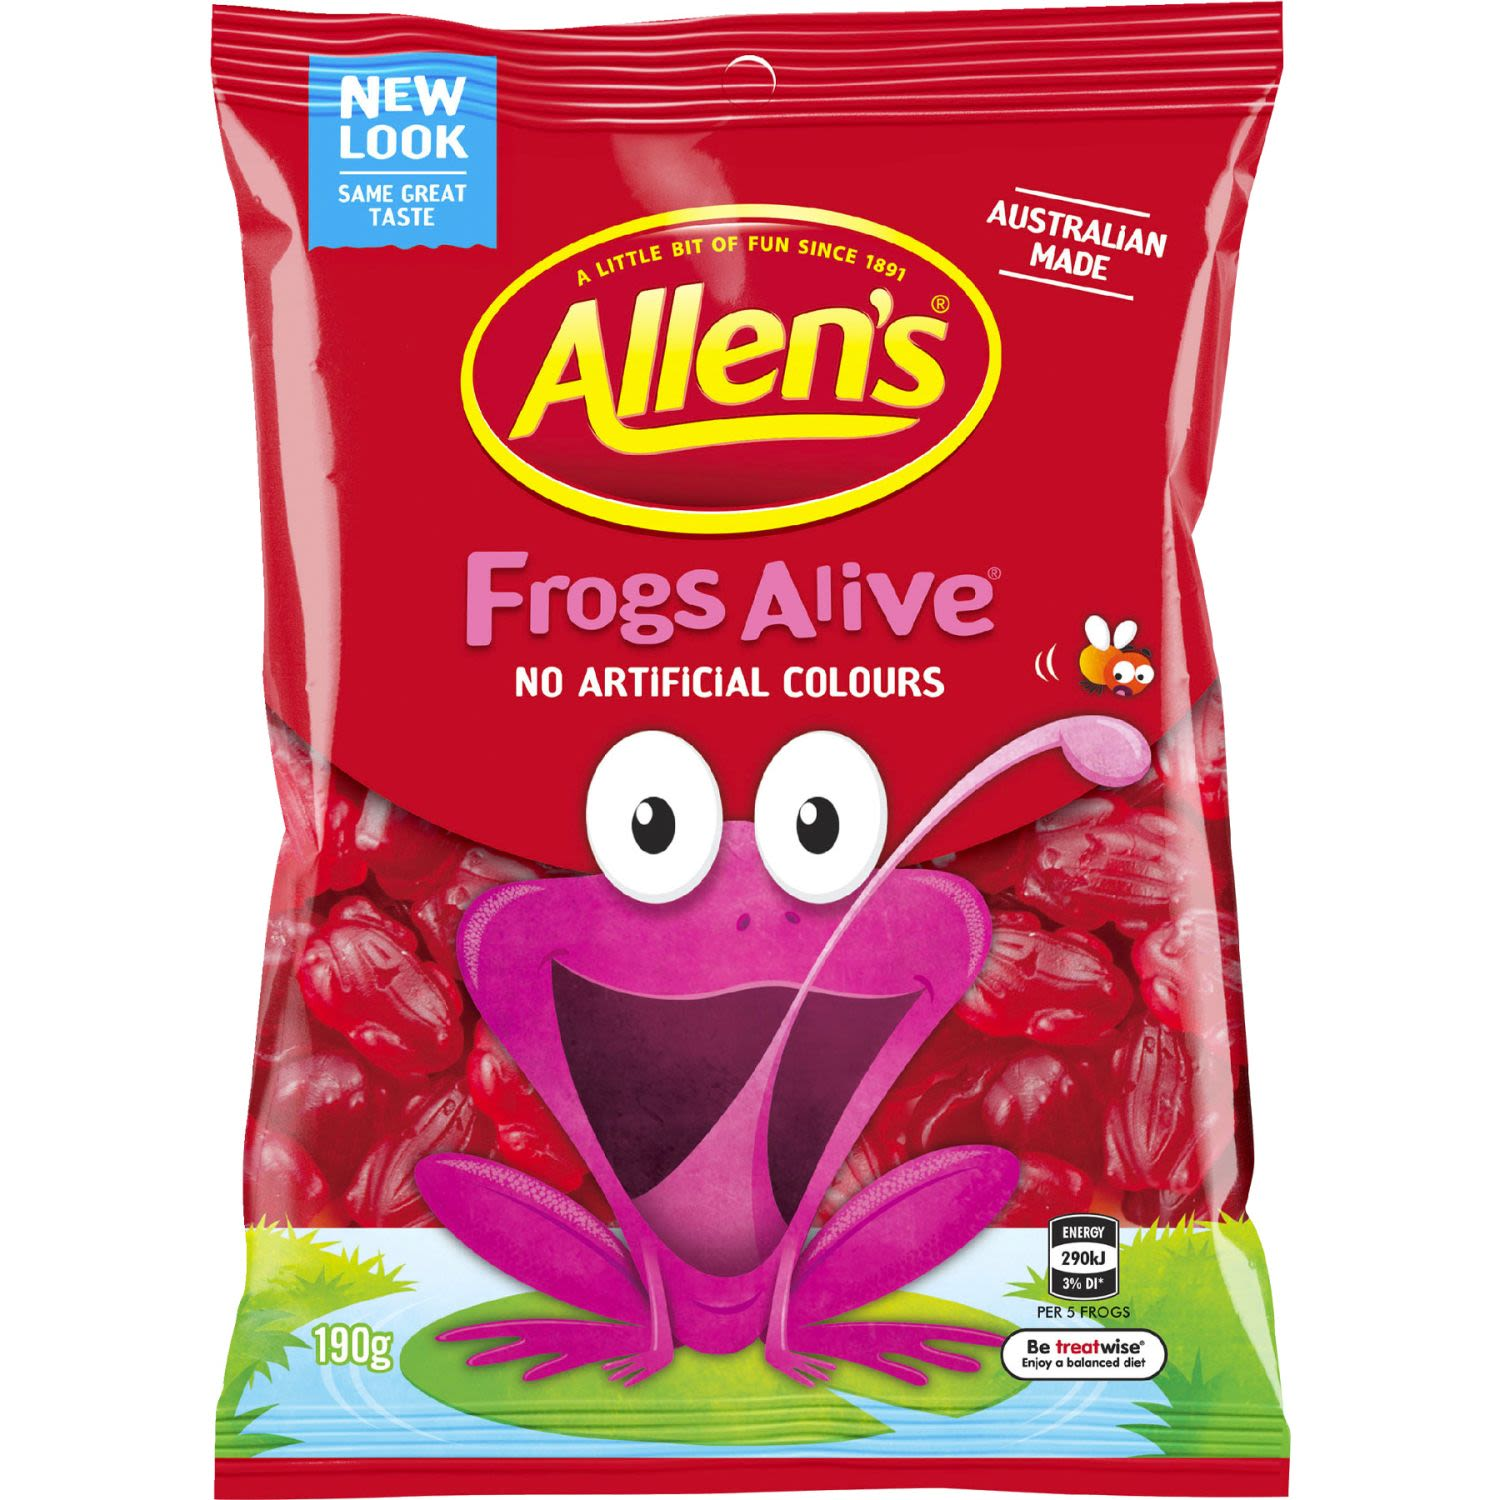 Allen's Frogs Alive are deliciously chewy raspberry jellies and a popular favourite. Catch these vibrant red frogs before they jump away! Twist it, stretch it, pull it, squish it or flatten it before enjoying a mouth-watering bite of fruity fun. Use them for your next baking decoration, or enjoy them straight from the bag. 5 Frogs = 1 Portion. Australian made and contains no artificial colours, so are great to share with family and friends. Contains Wheat. May contain Milk. Allen's makes smiles!